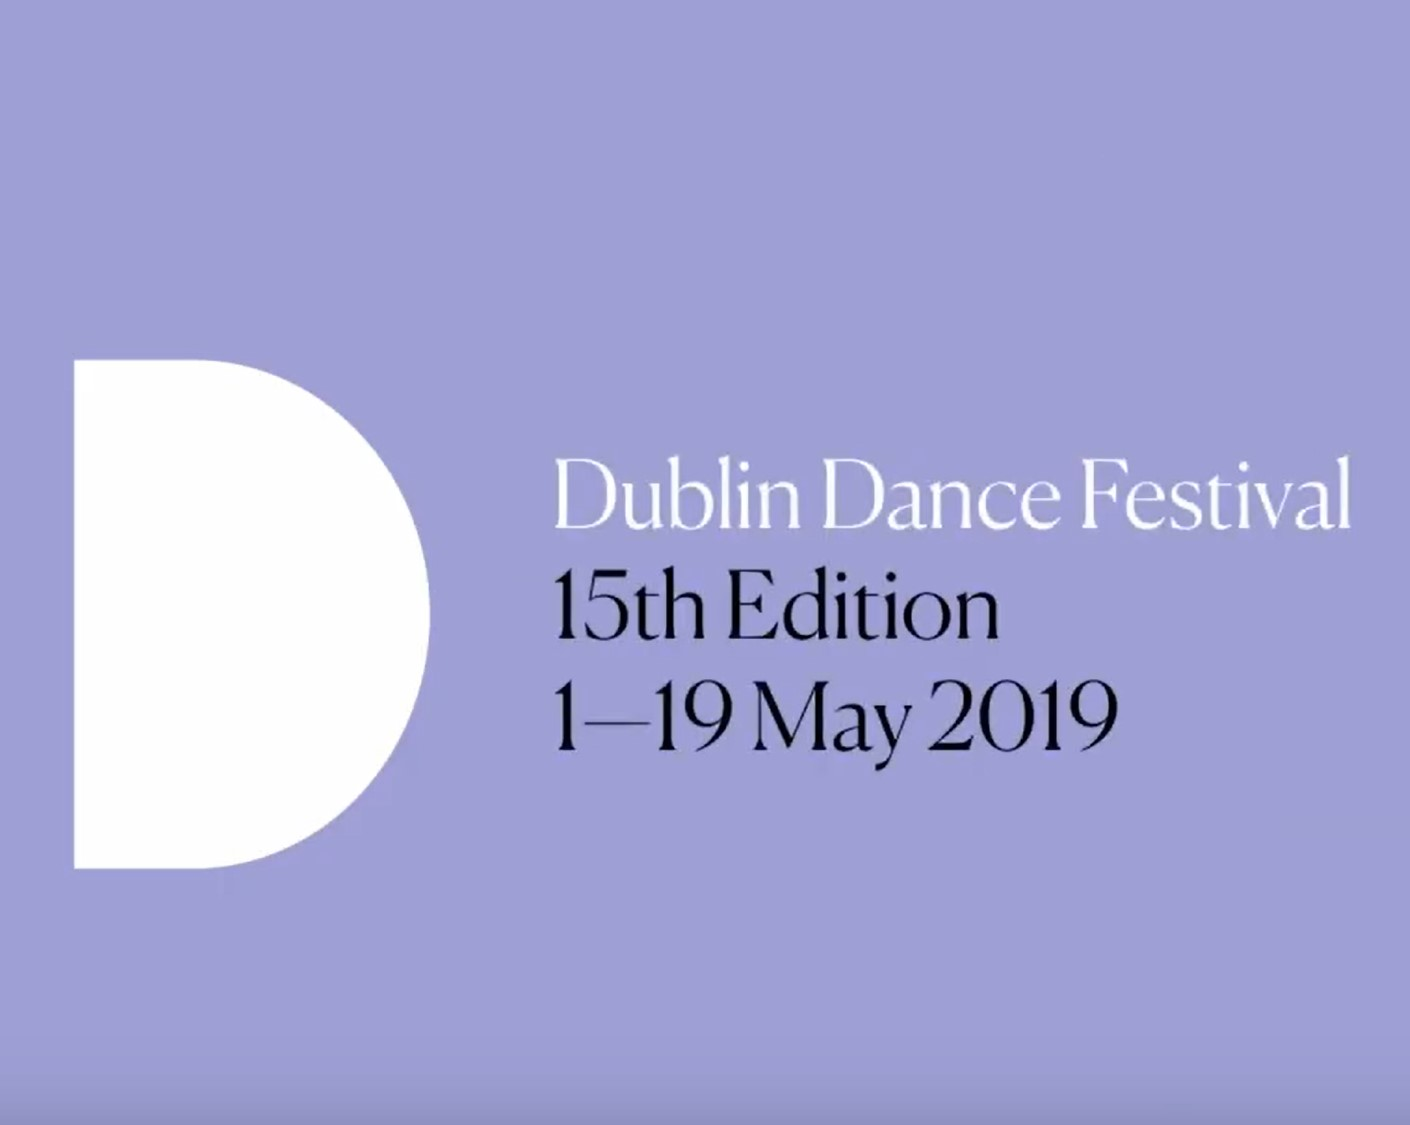 Dublin Dance Festival - 1 - 19 May 2019